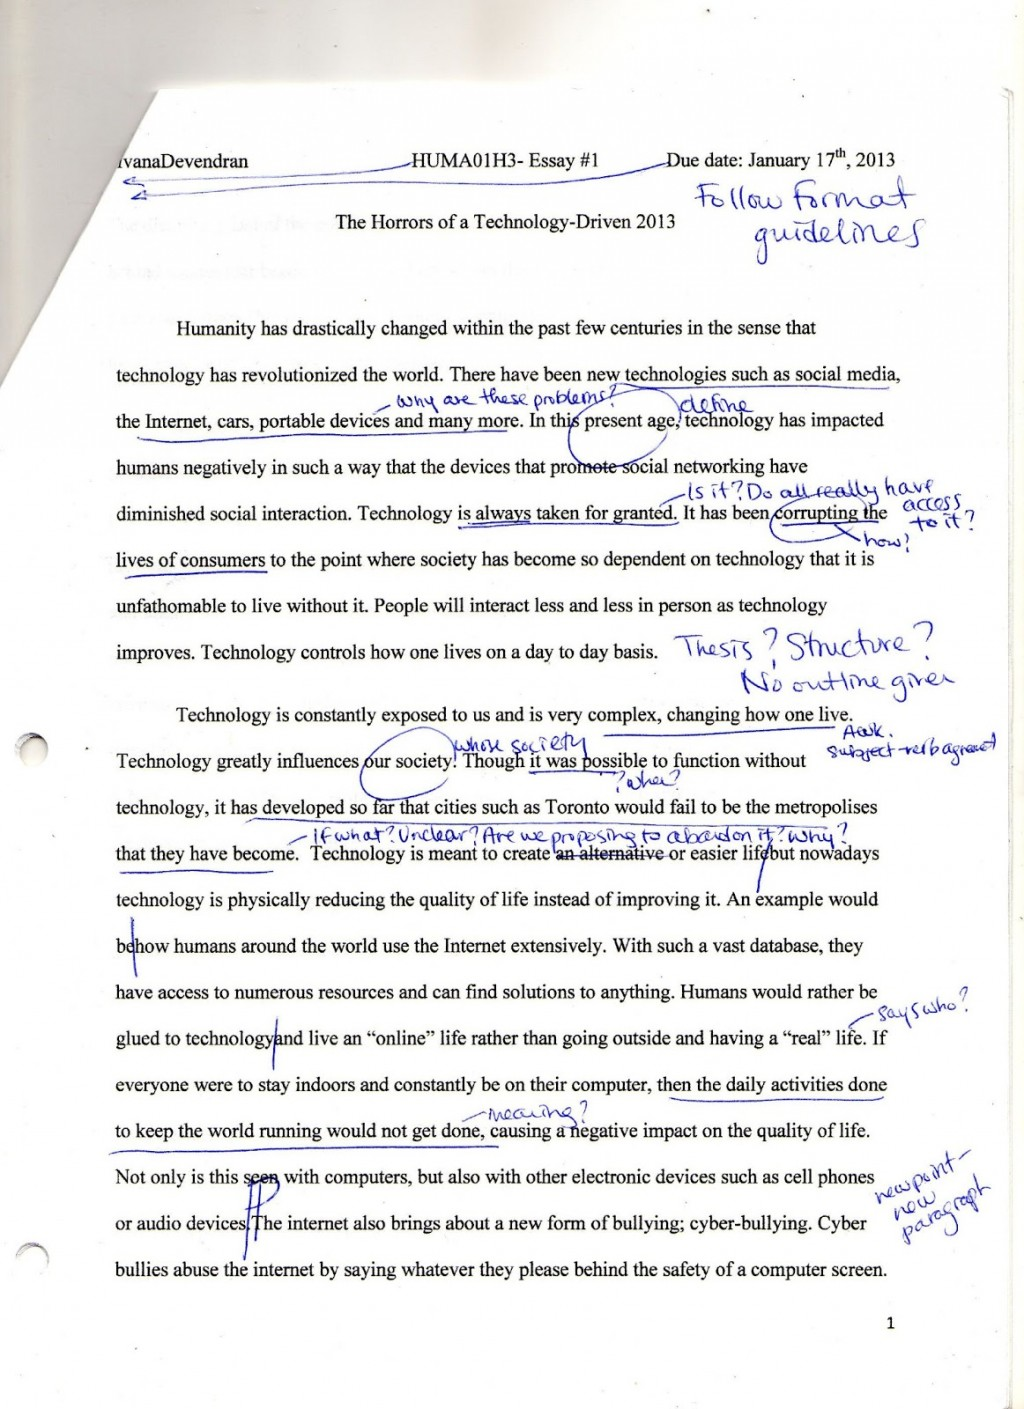 021 Issues To Write An Essay About Img008 Awesome Interesting Topics On For High School Social Large